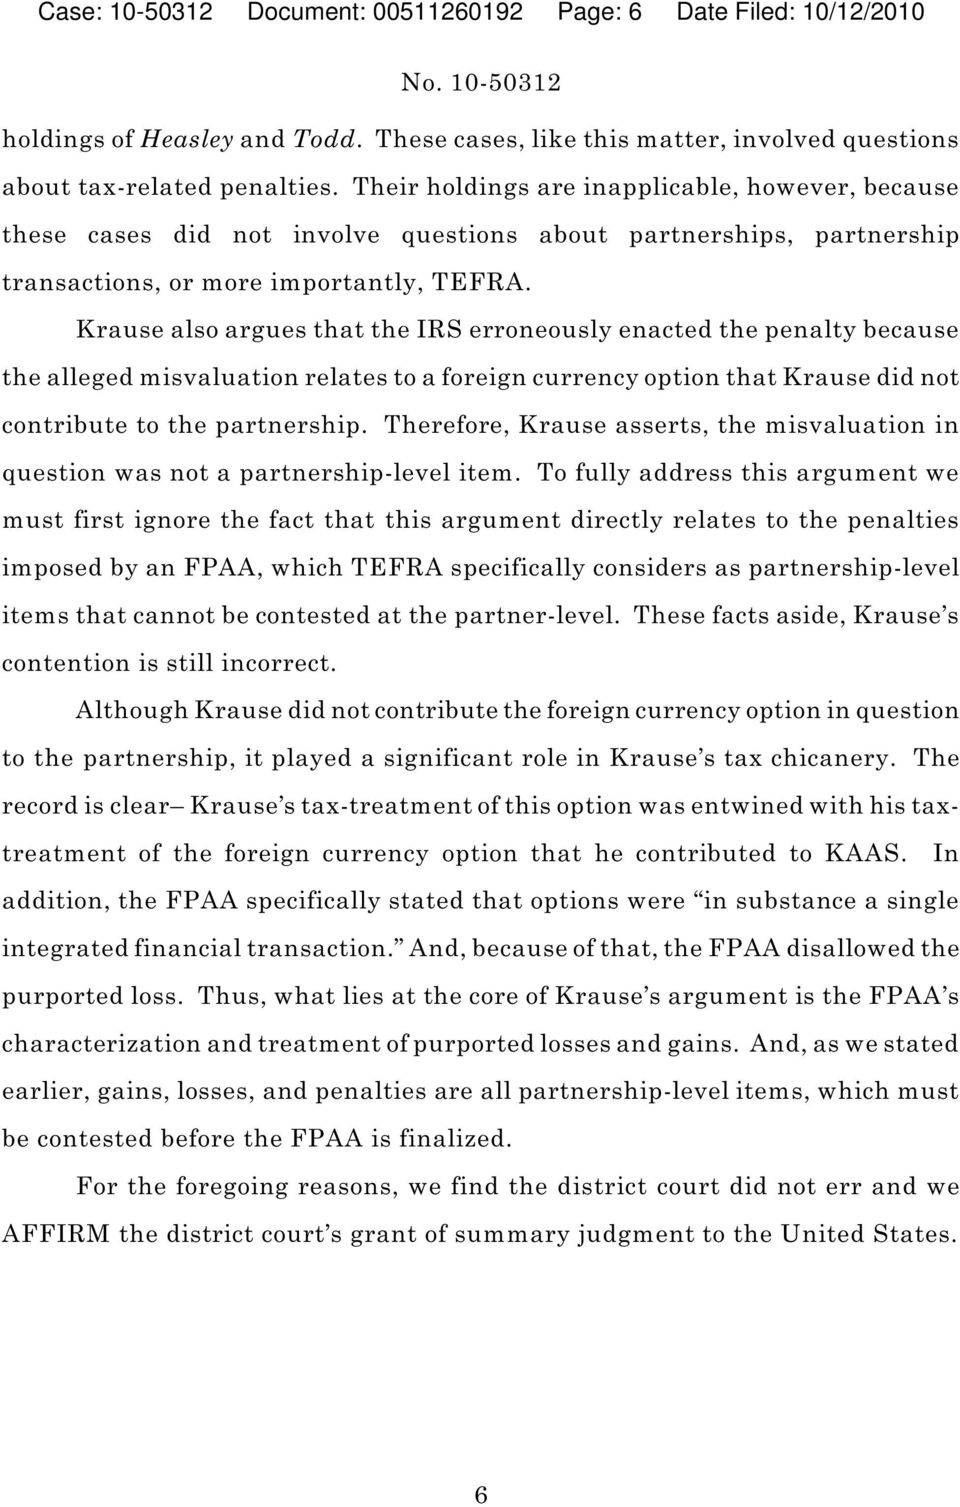 Krause also argues that the IRS erroneously enacted the penalty because the alleged misvaluation relates to a foreign currency option that Krause did not contribute to the partnership.